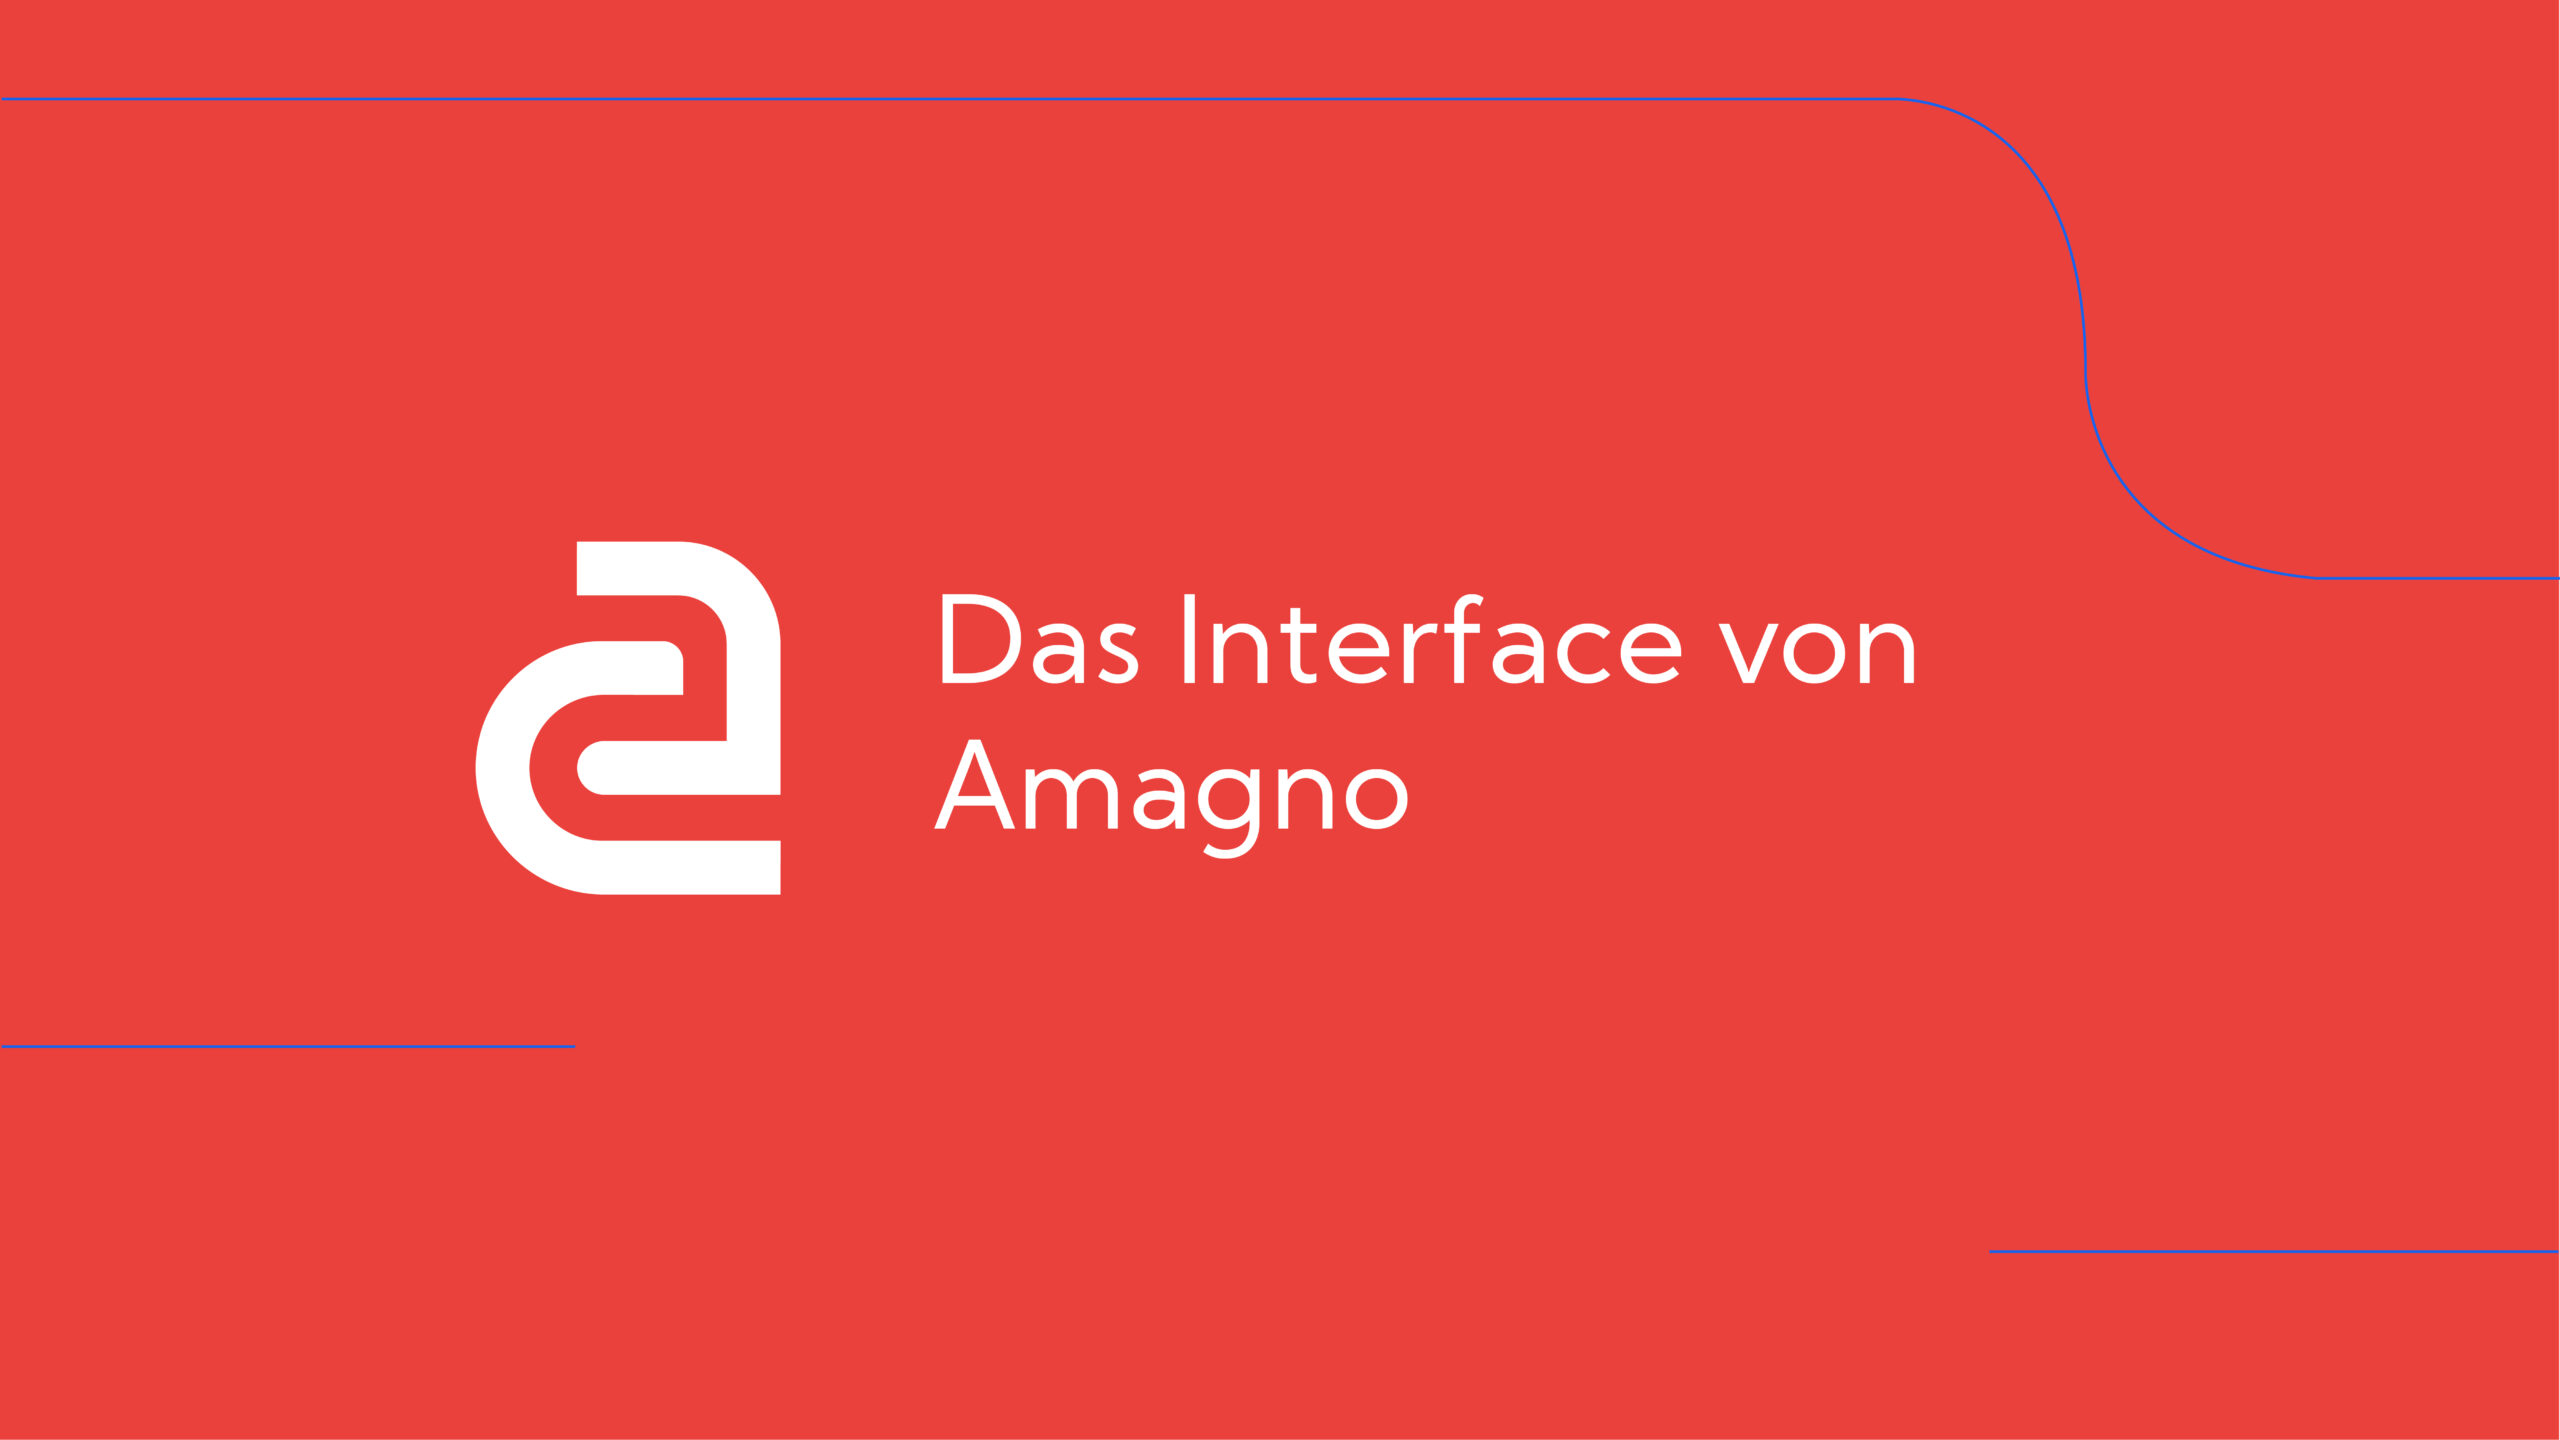 How-To: AMAGNO Basics – Das Interface